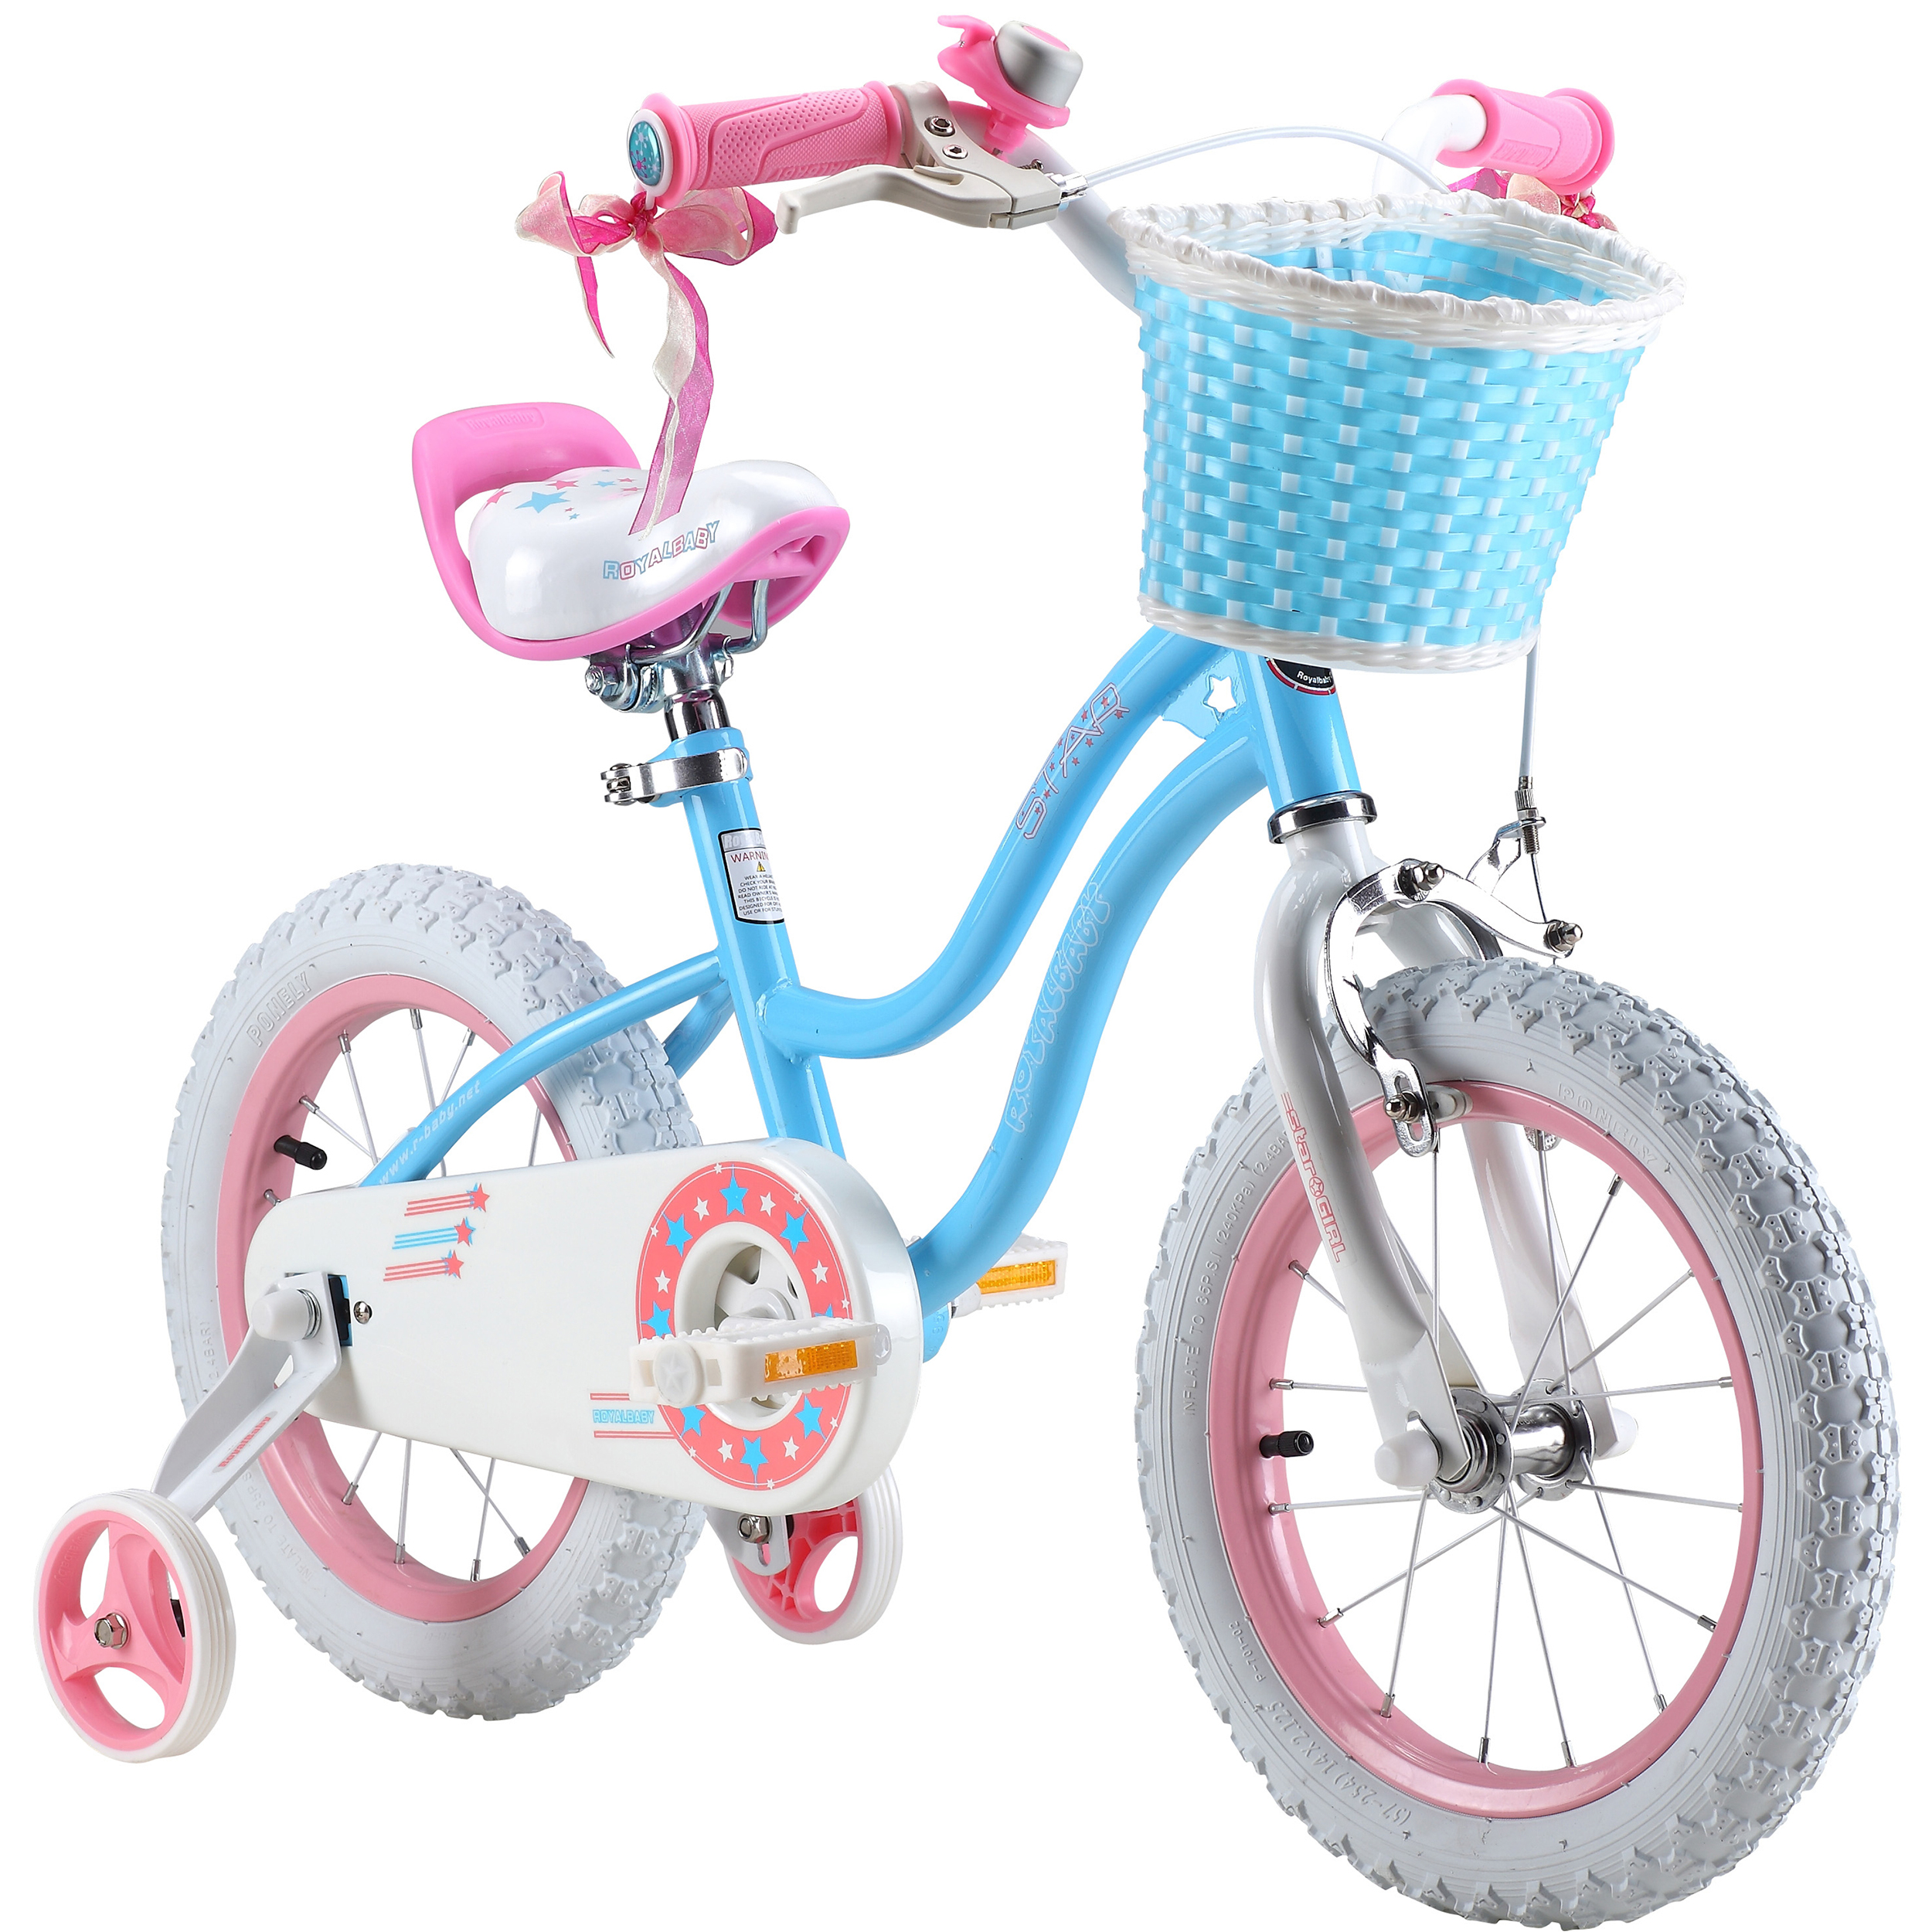 Royalbaby Stargirl Girl's Bike with Training Wheels and Basket, Perfect Gift for Kids. 12 Inch, 14 Inch, 16 Inch, Blue ...